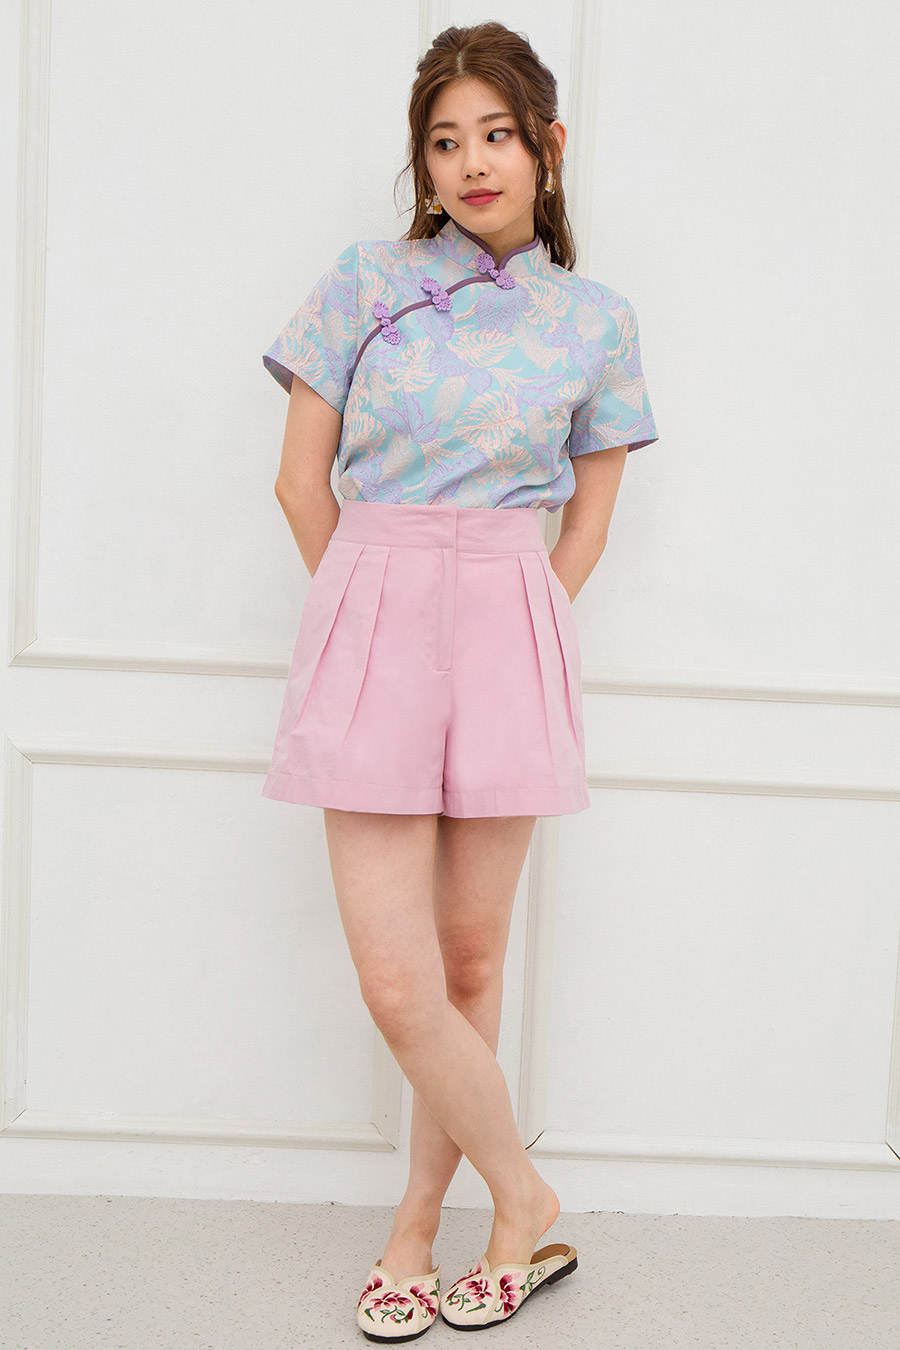 PENNY SHORTS - COTTON CANDY [BY MODPARADE]